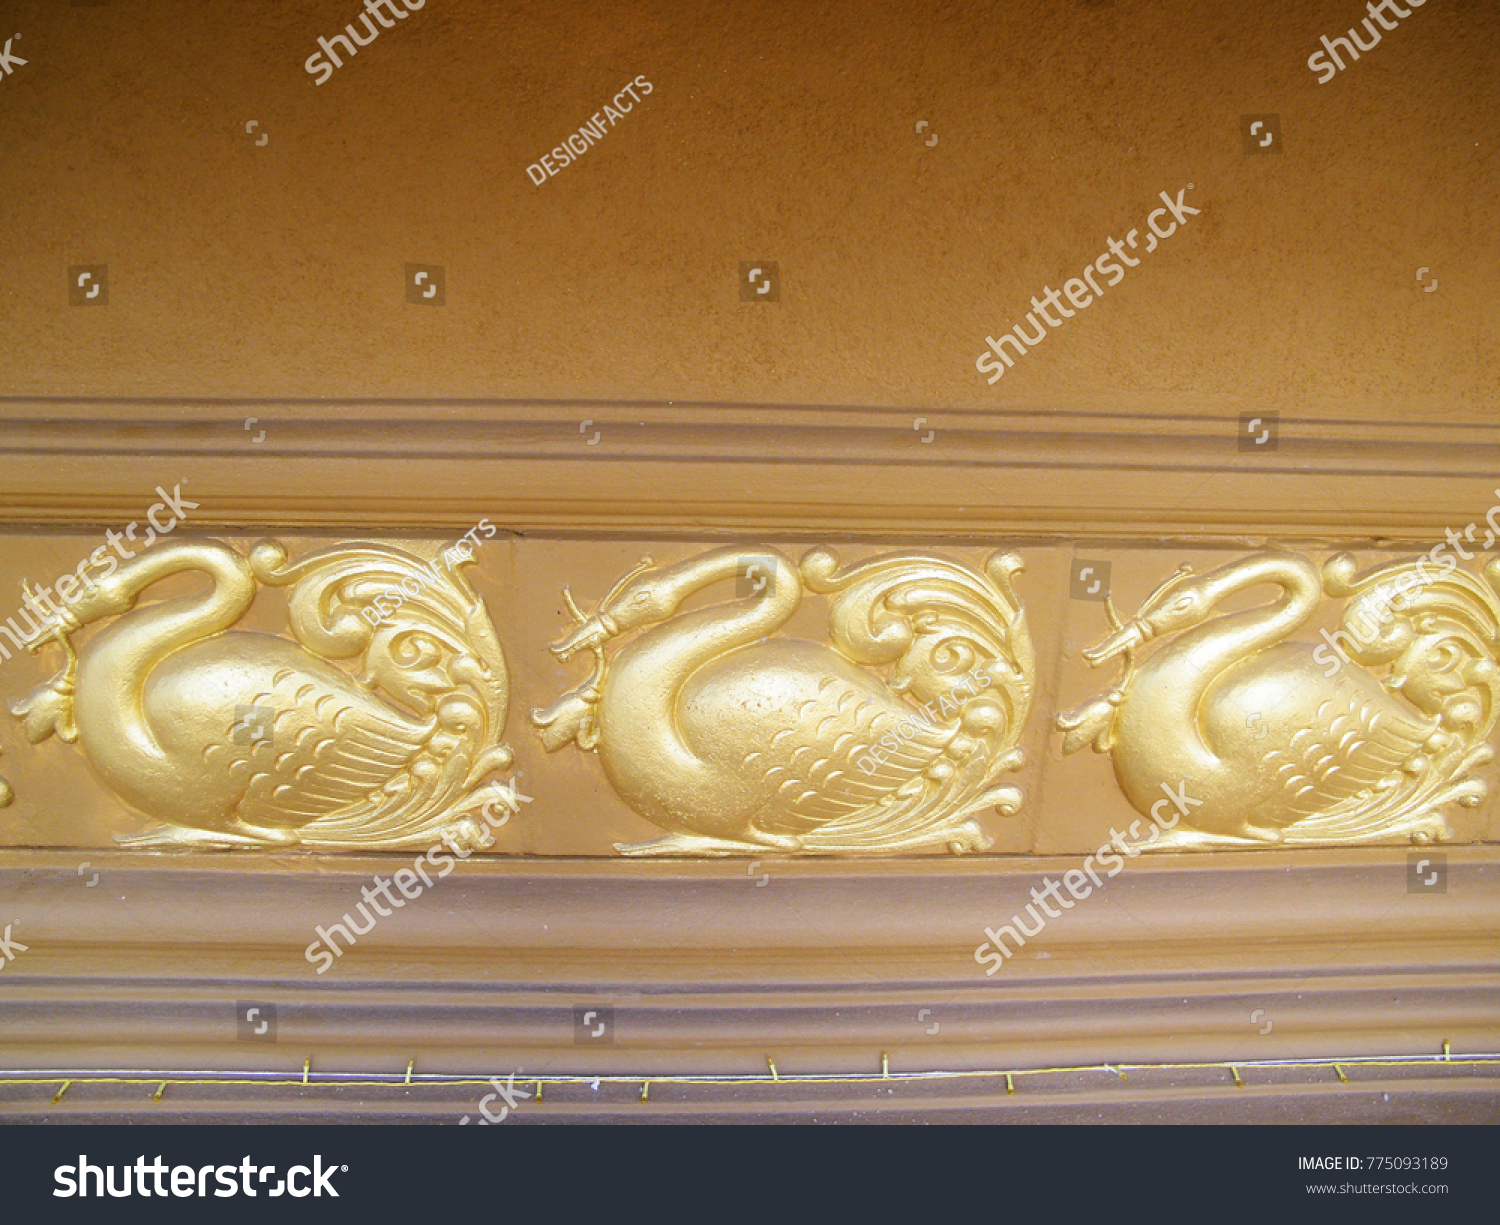 Antique Hand Painted Wall Decoration Thai Stock Photo (Royalty Free ...